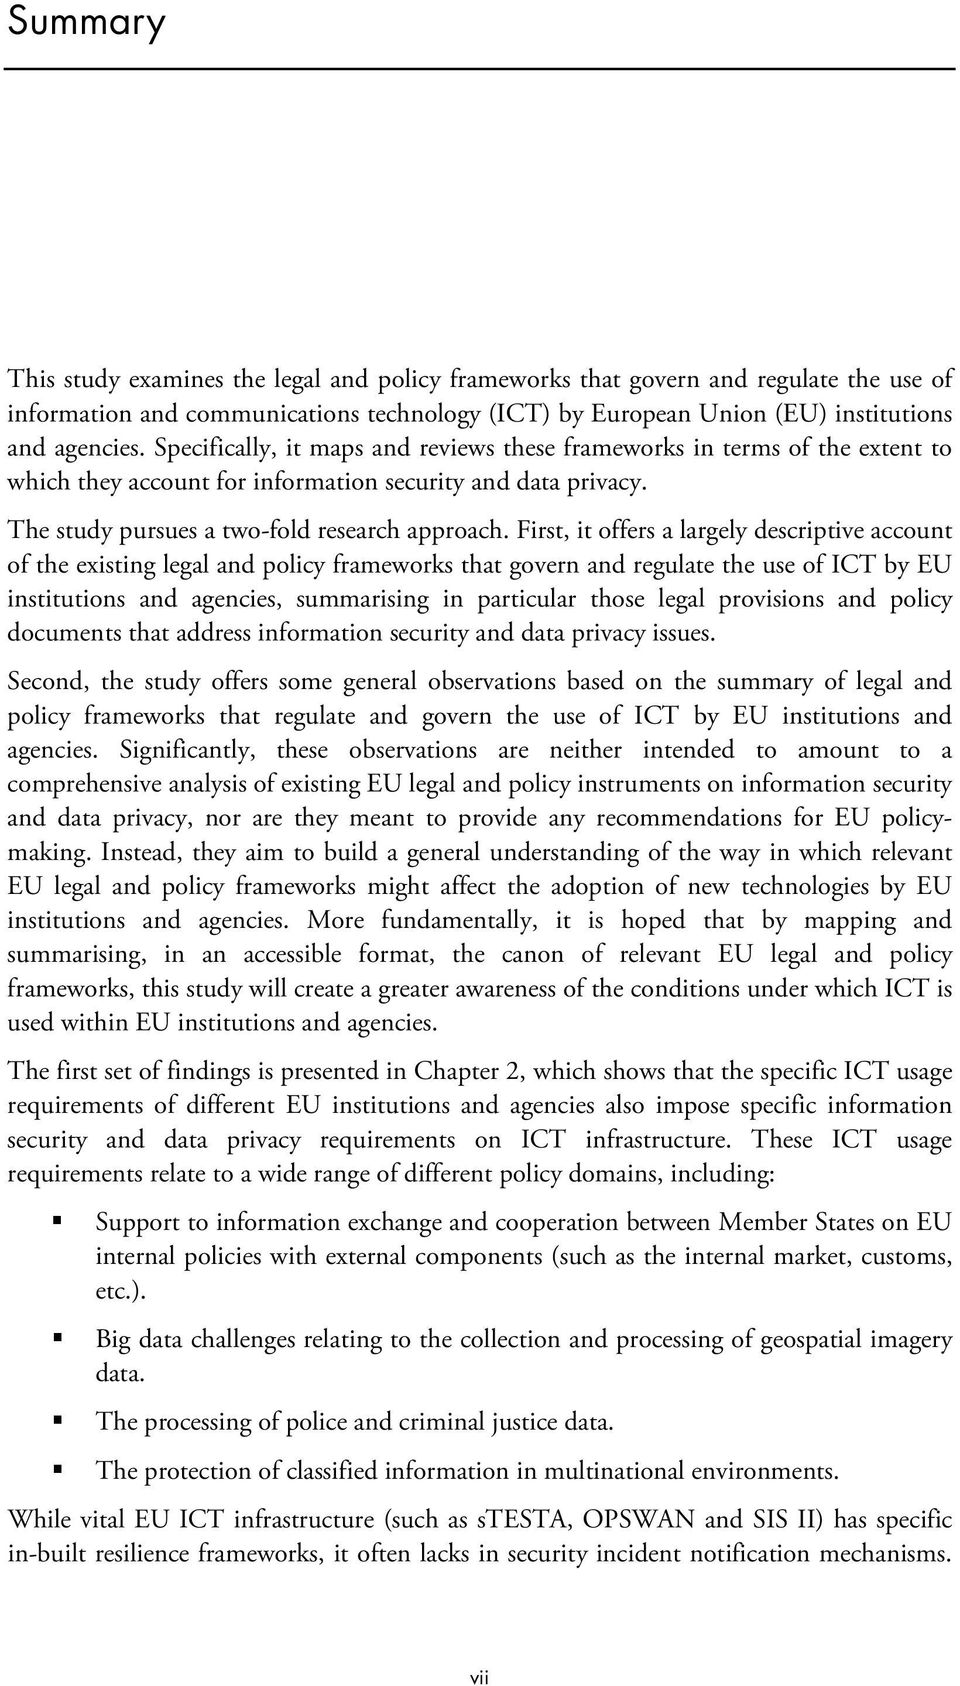 First, it offers a largely descriptive account of the existing legal and policy frameworks that govern and regulate the use of ICT by EU institutions and agencies, summarising in particular those